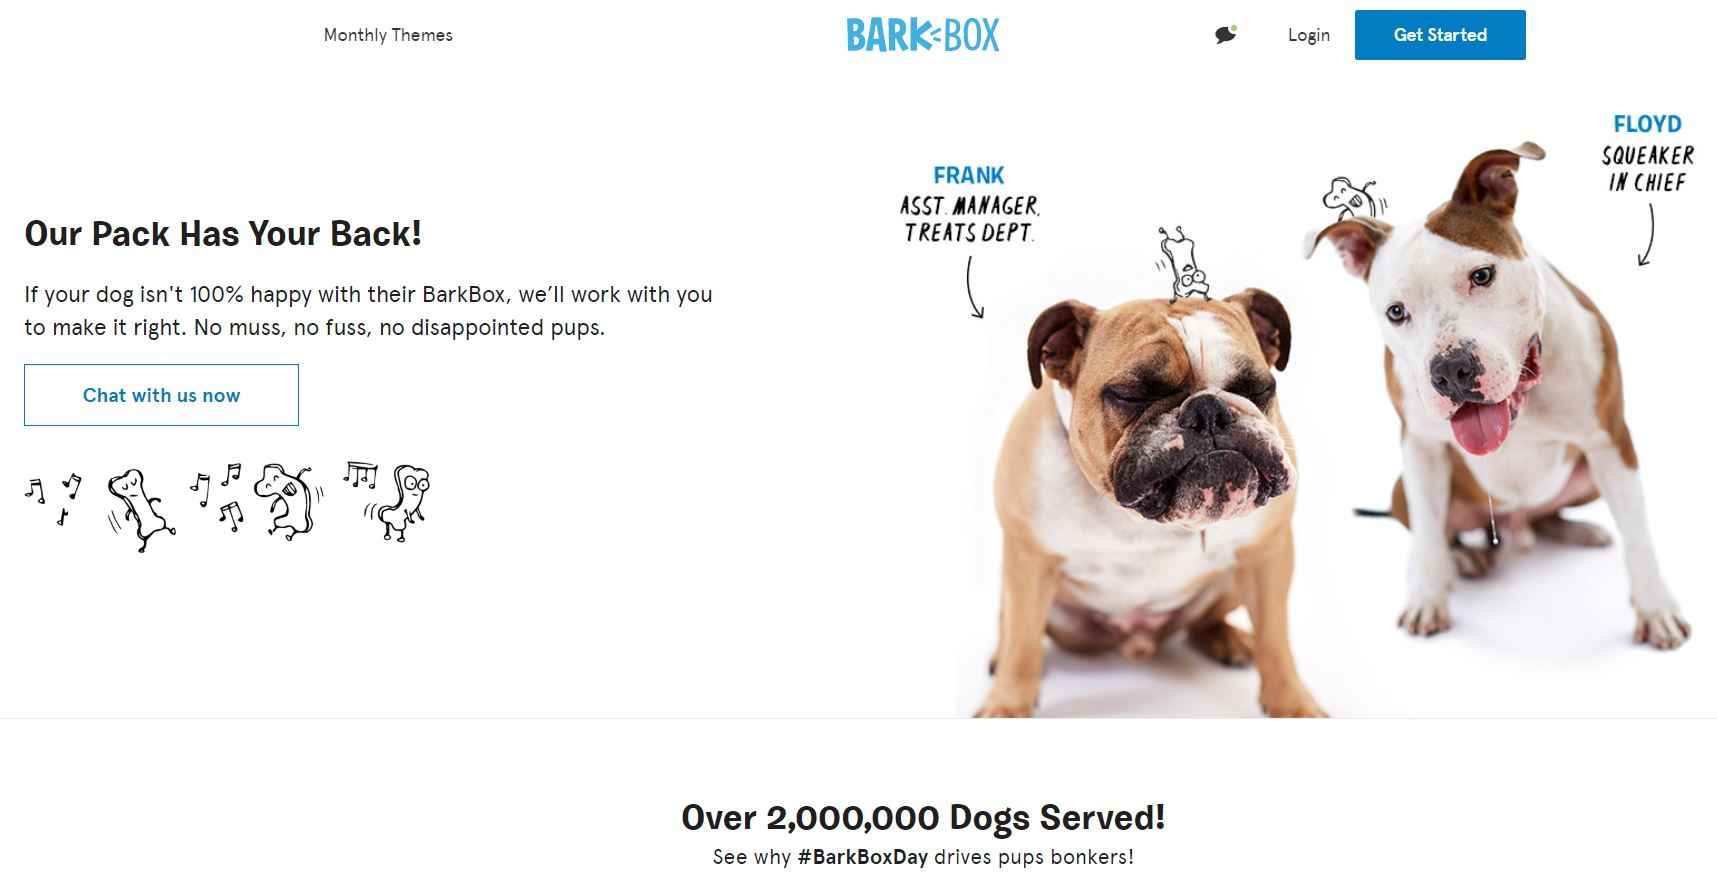 Barkbox website